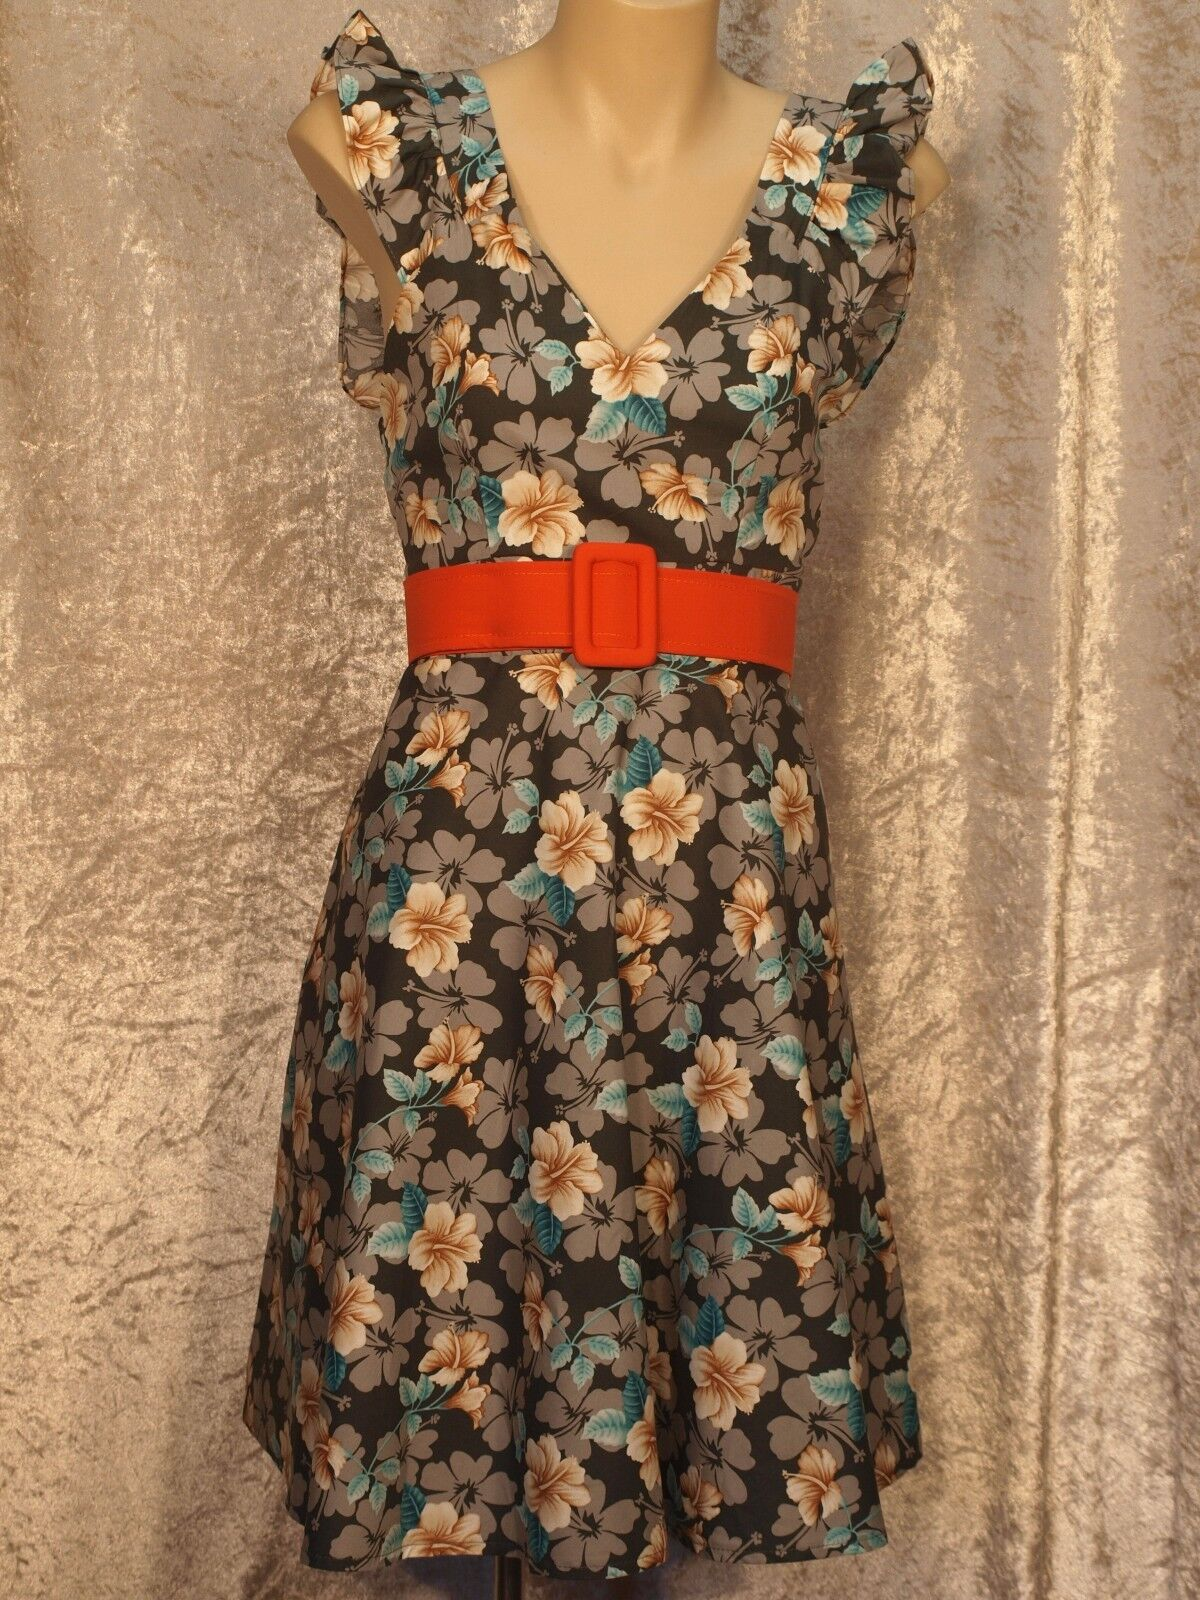 1950 Summer Cotton Dress with floral pattern frilly straps